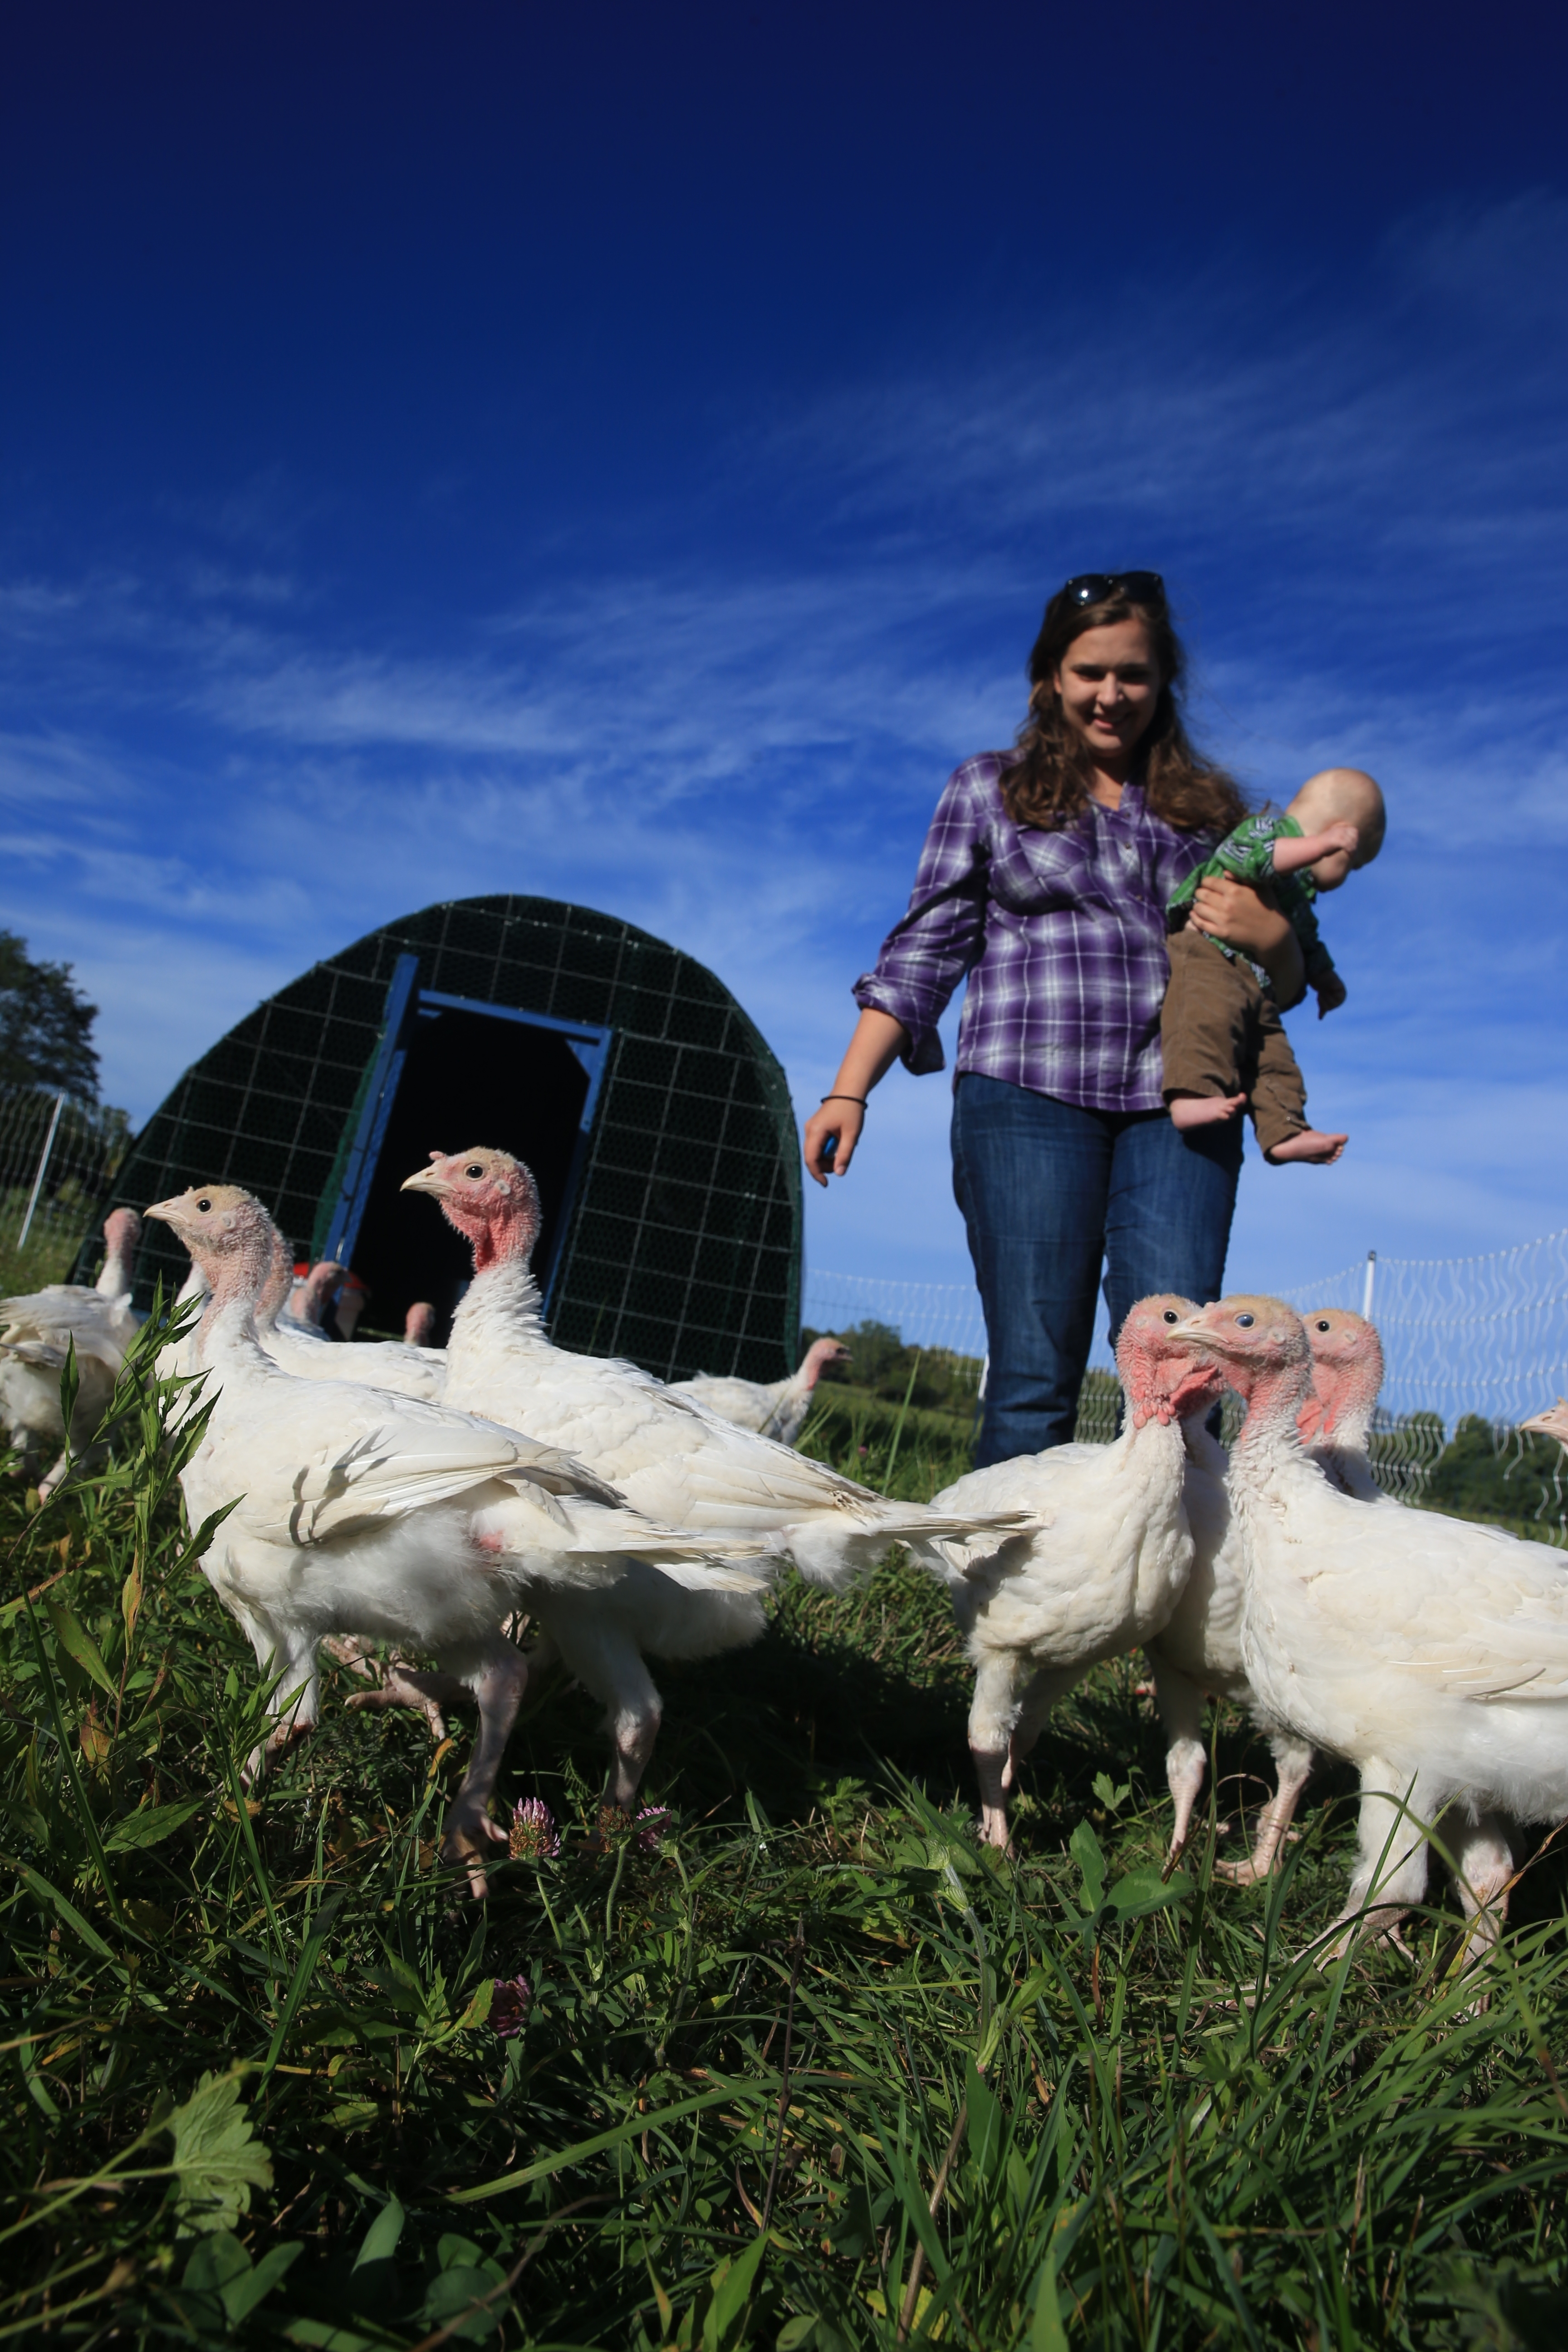 Jeweliet Phillips (CQ), and her son John, tend to the animals on a farm where they raise eggs, chickens, and turkeys, you may buy the fowl from her farm through meatsuite.com, Phillips feeds grain to the birds on her farm every morning at her farm in Lancaster, N.Y. on Wednesday Sept. 28, 2016. (John Hickey/Buffalo News)